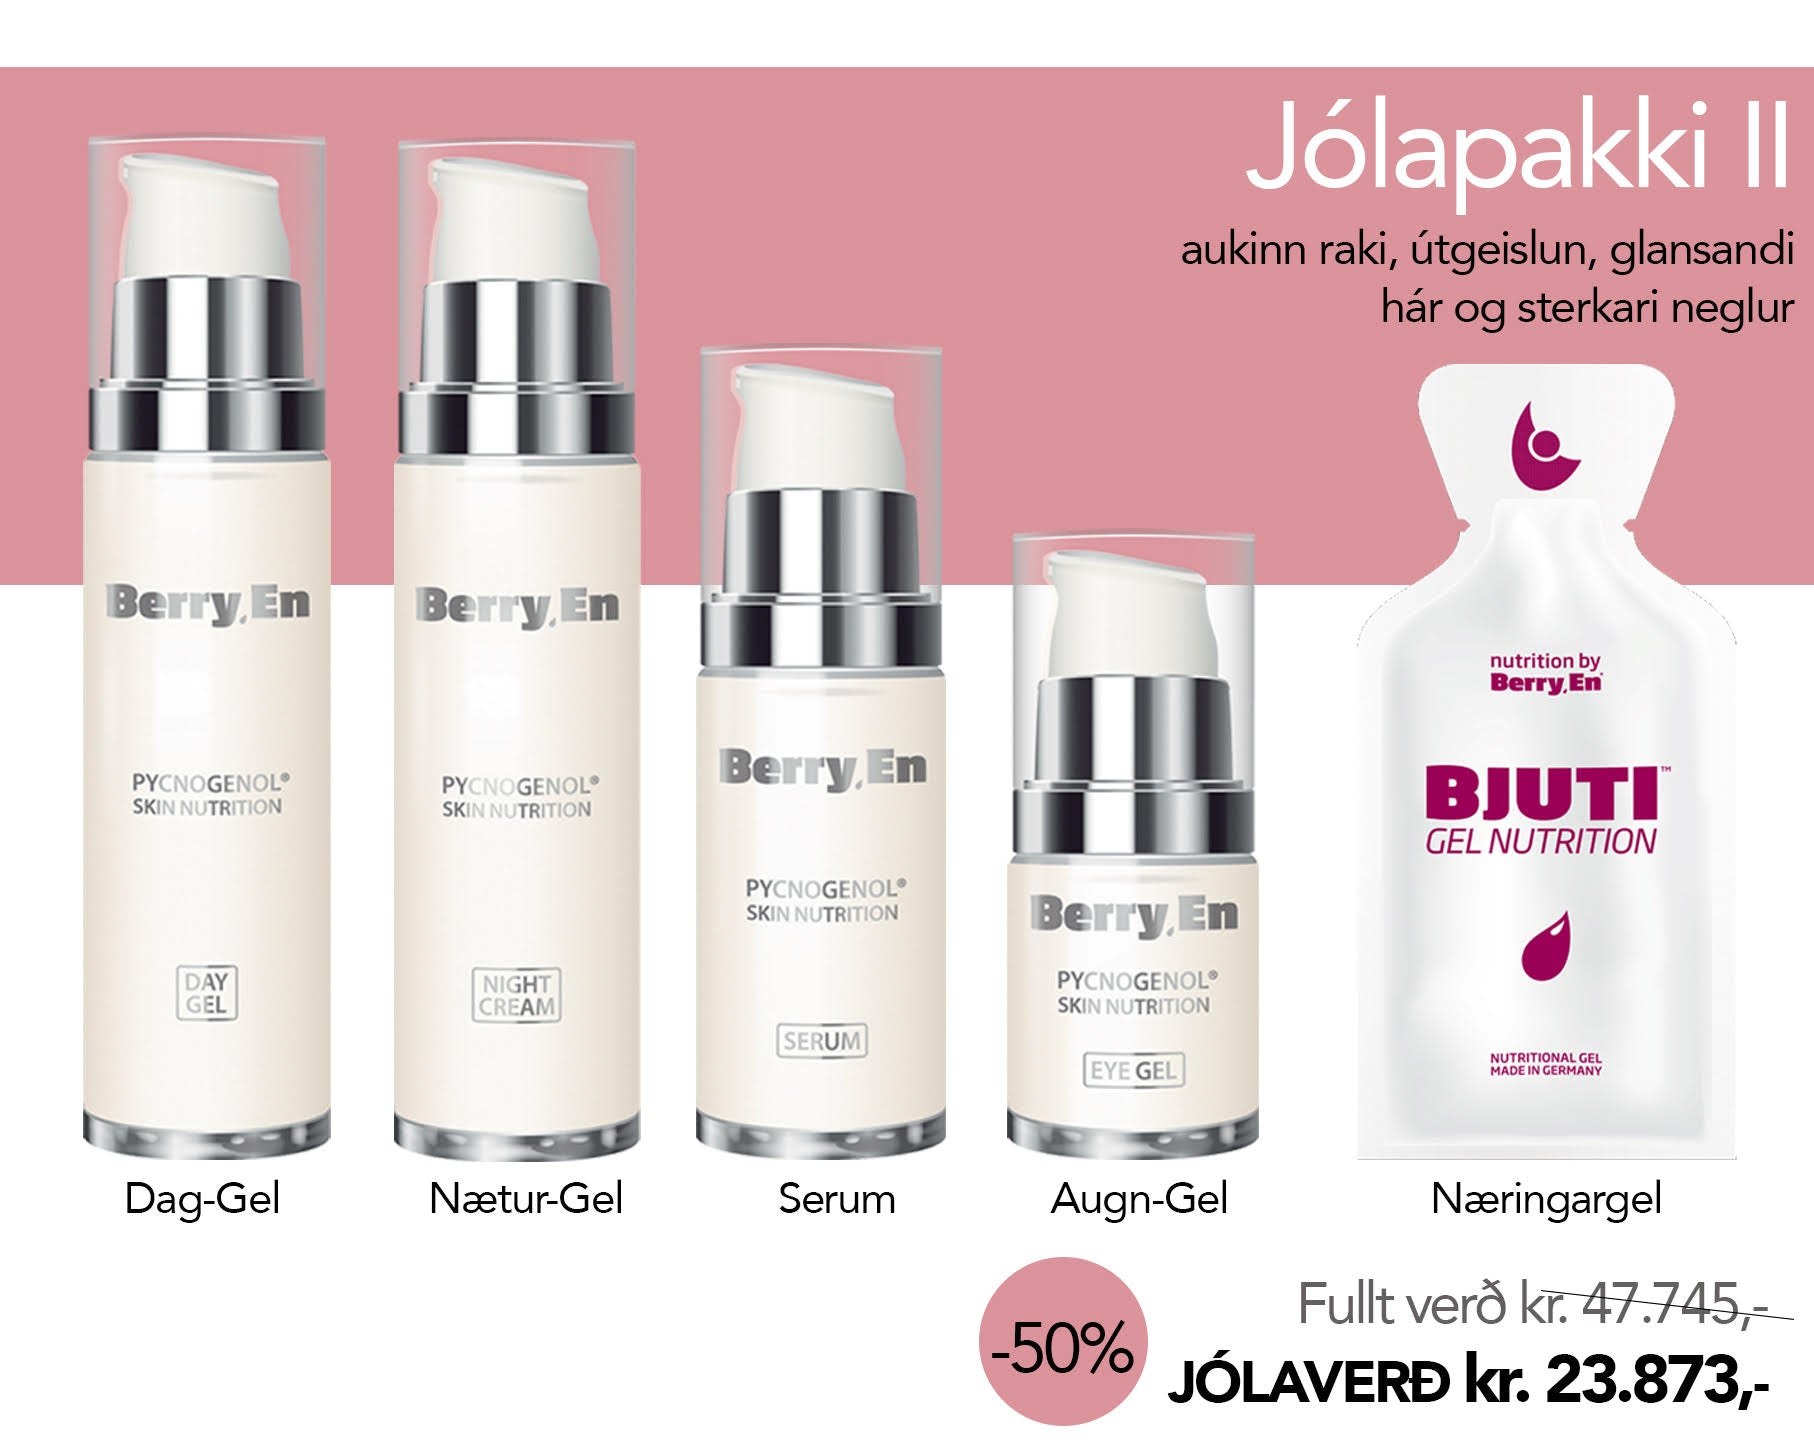 Jólatilboð 2 (Day Gel, Night Gel, Serum, Eye Gel, Bjuti)